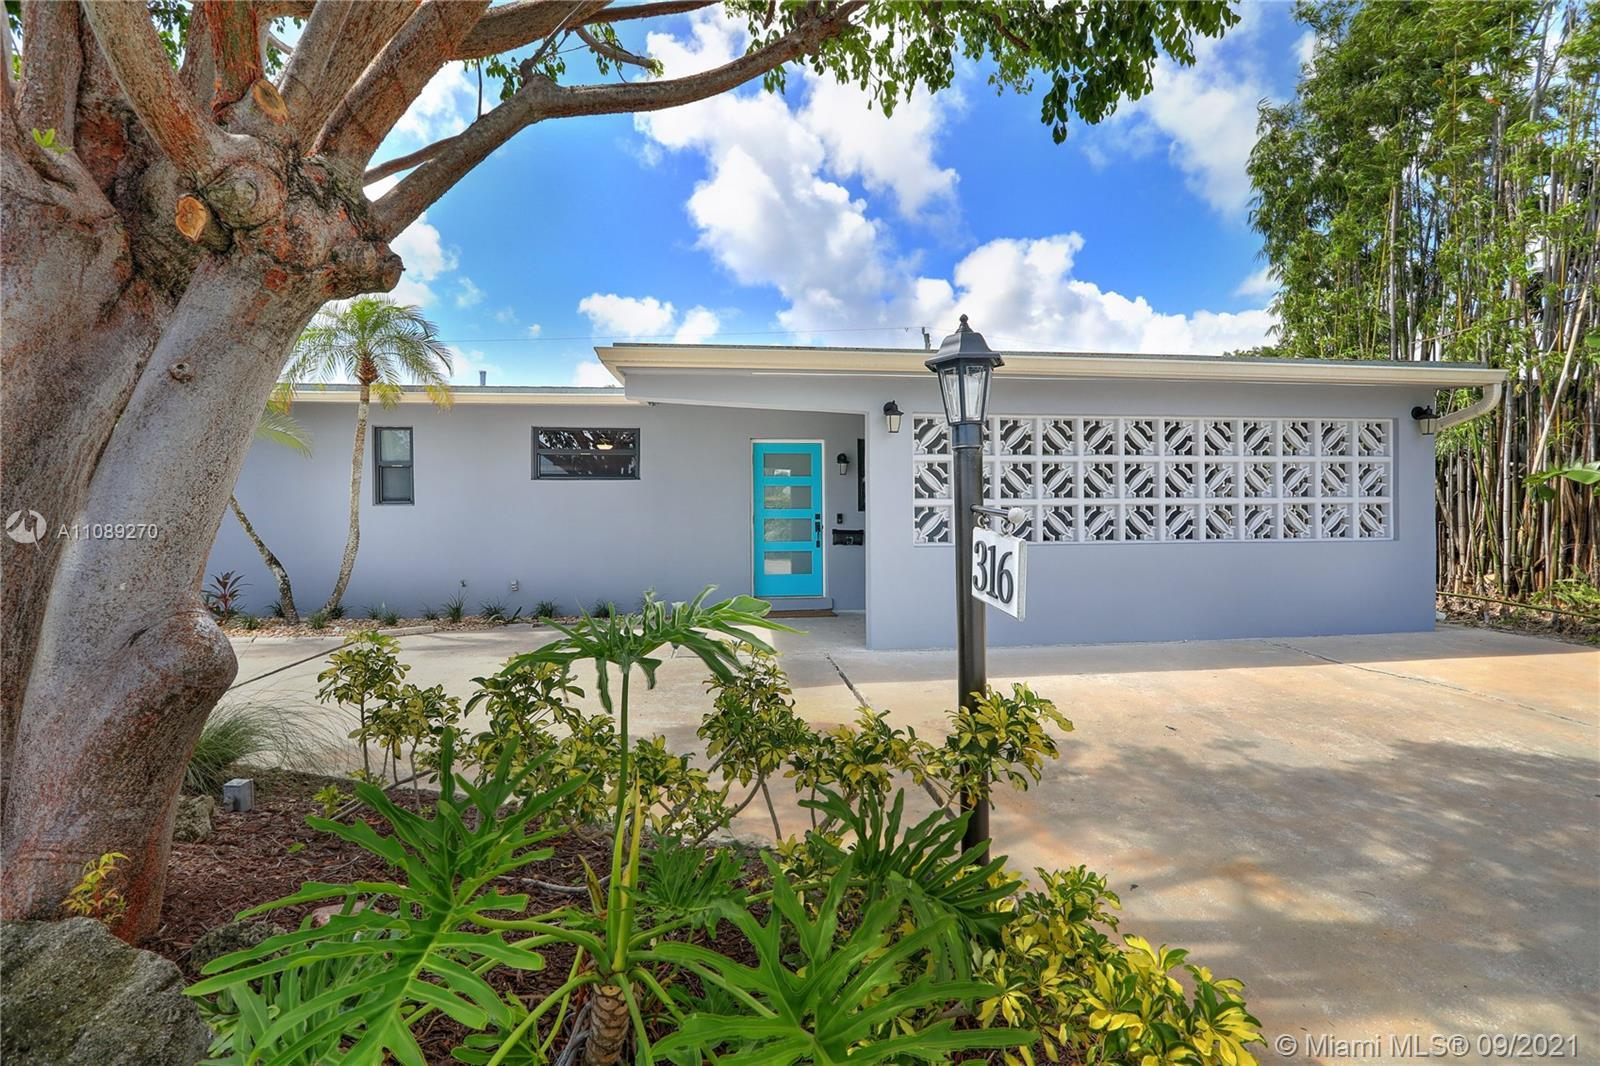 Move in ready!! Just bring your tooth brush and move right into this 3 bedroom and 3 bath home in th